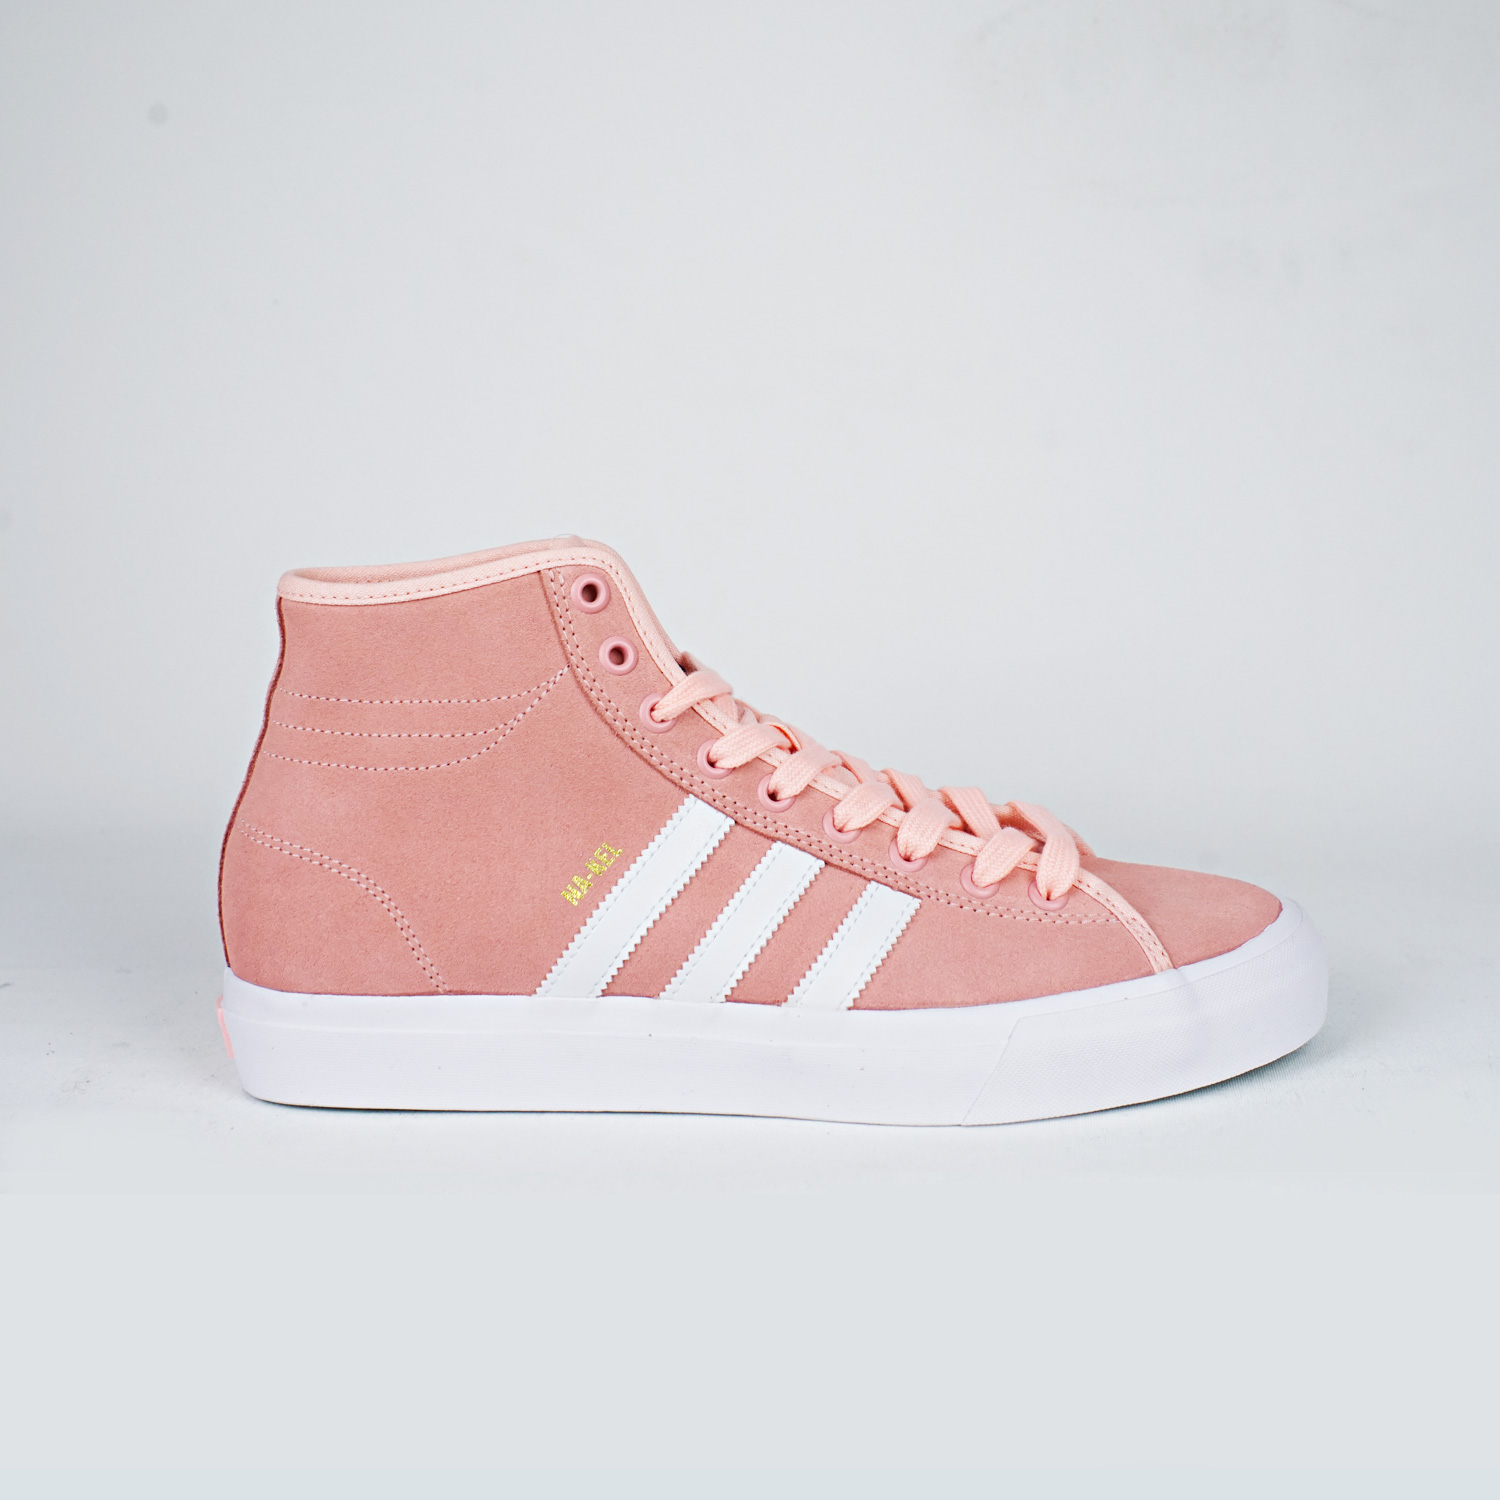 Adidas  The Brand Stripes Shoes